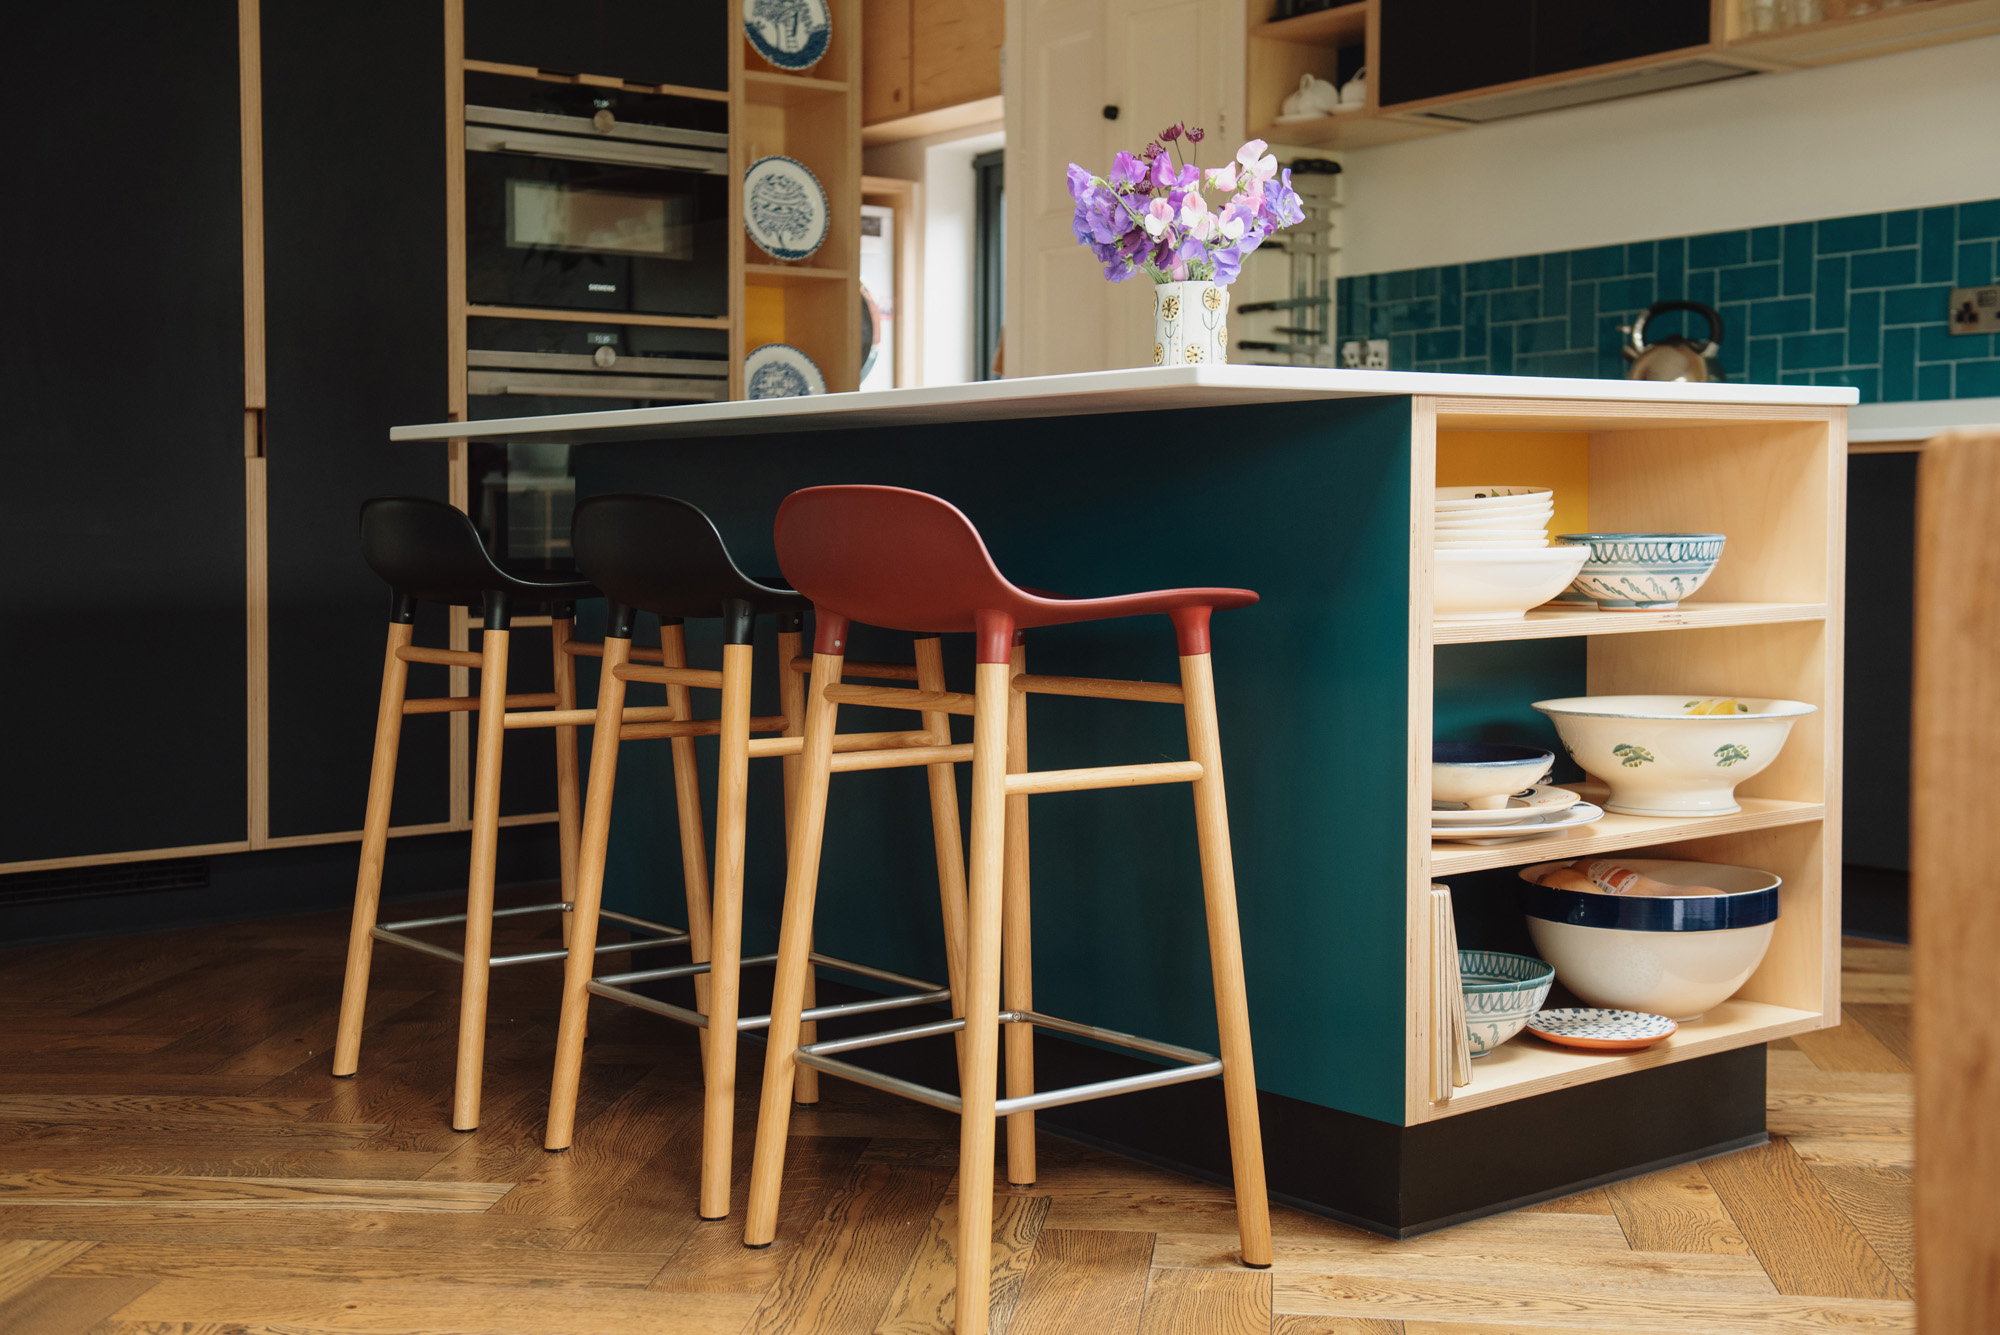 Open sided kitchen island with red and black bar stools